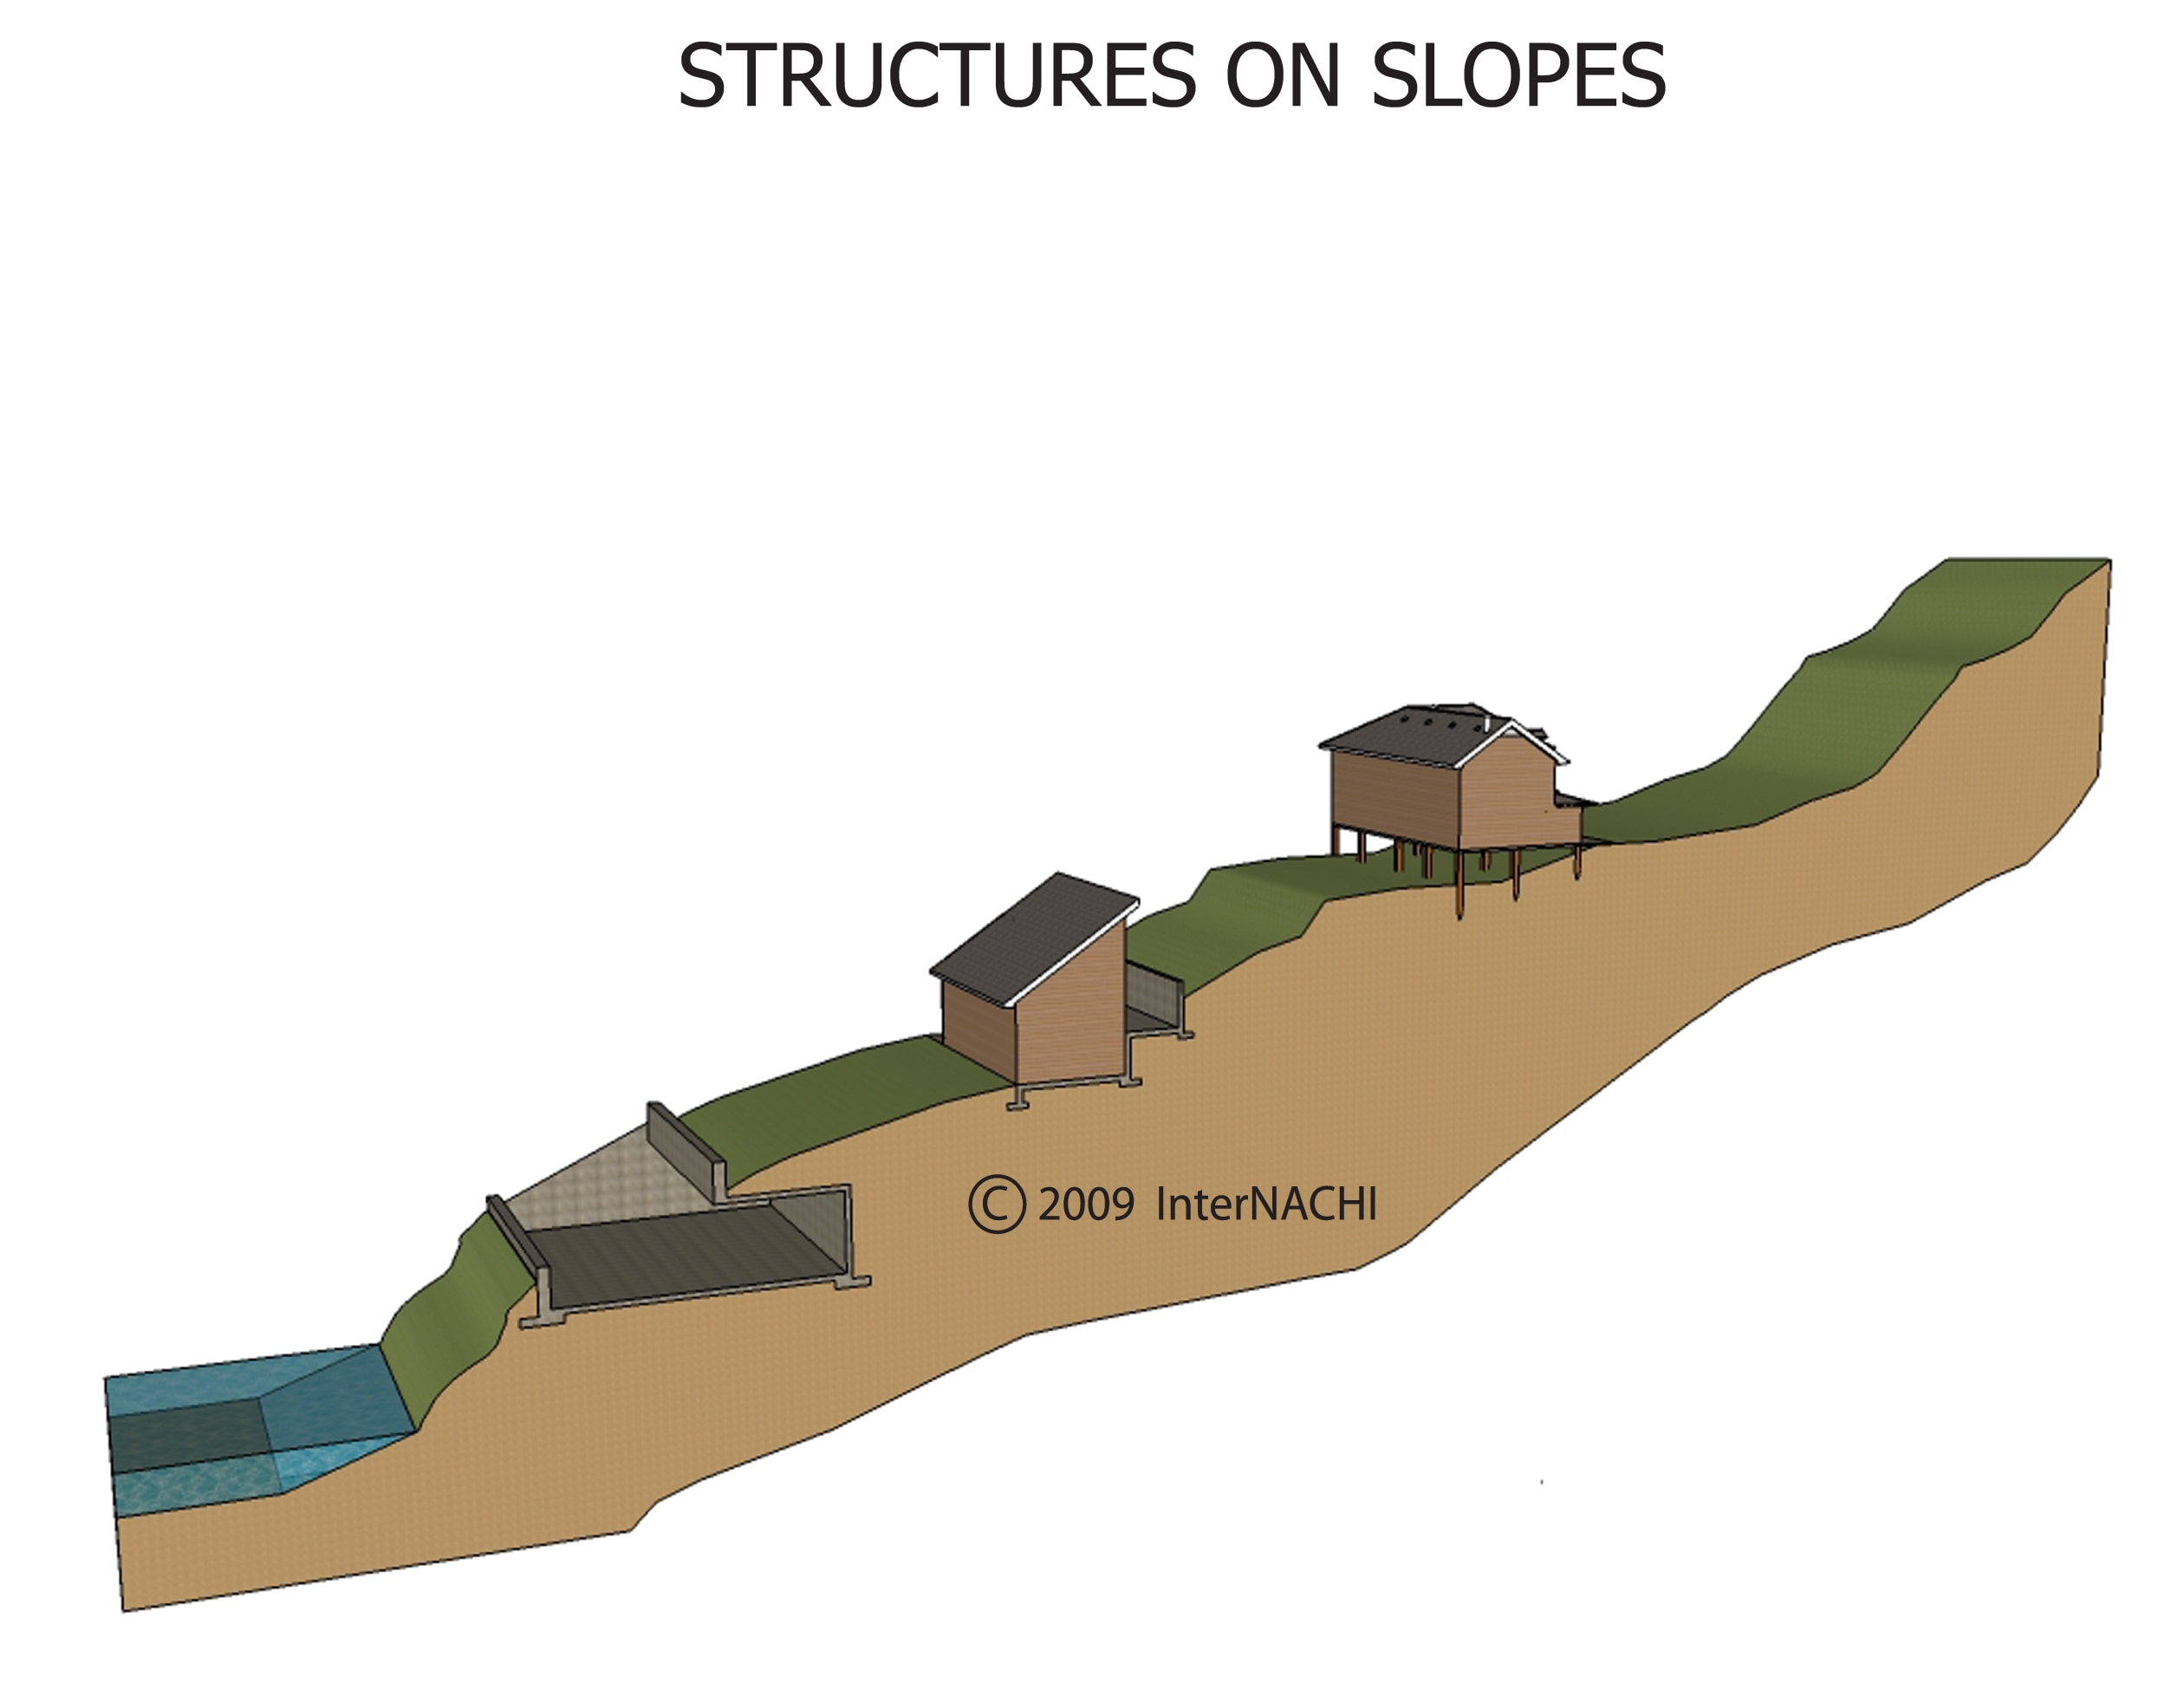 Structures on slopes.